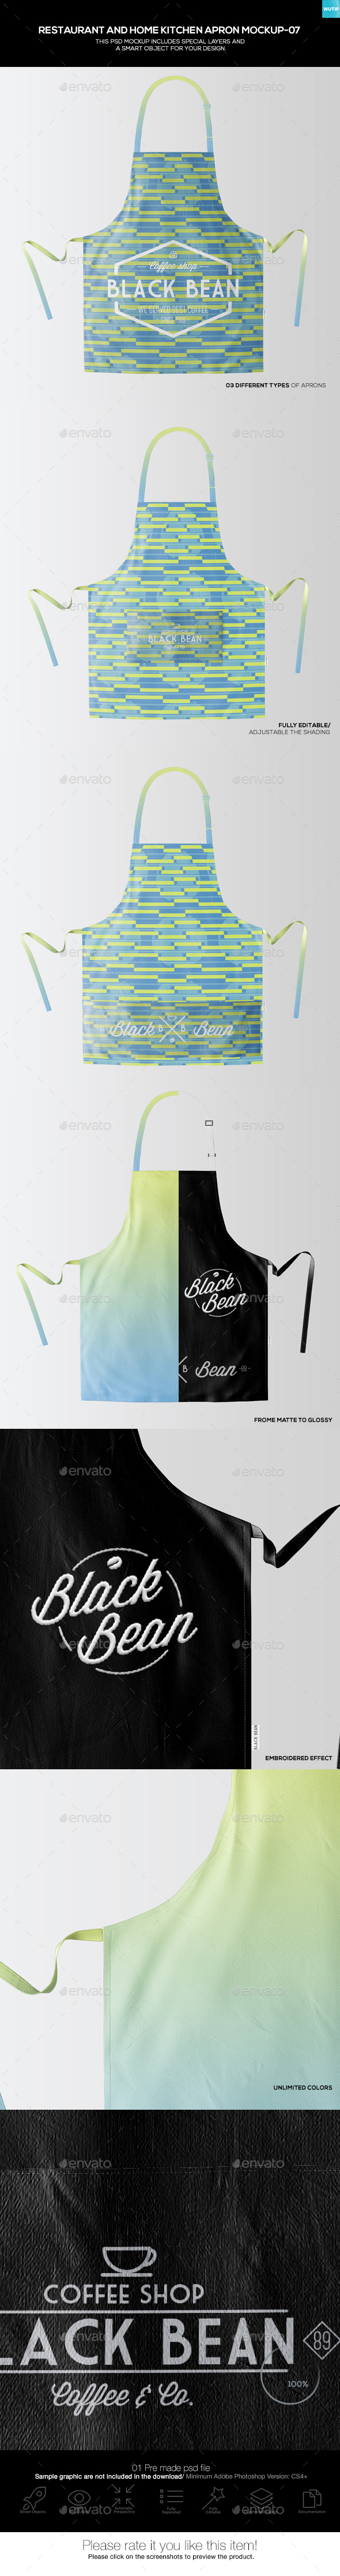 Restaurant and Home Kietchen Apron Mockup-07 - Miscellaneous Apparel